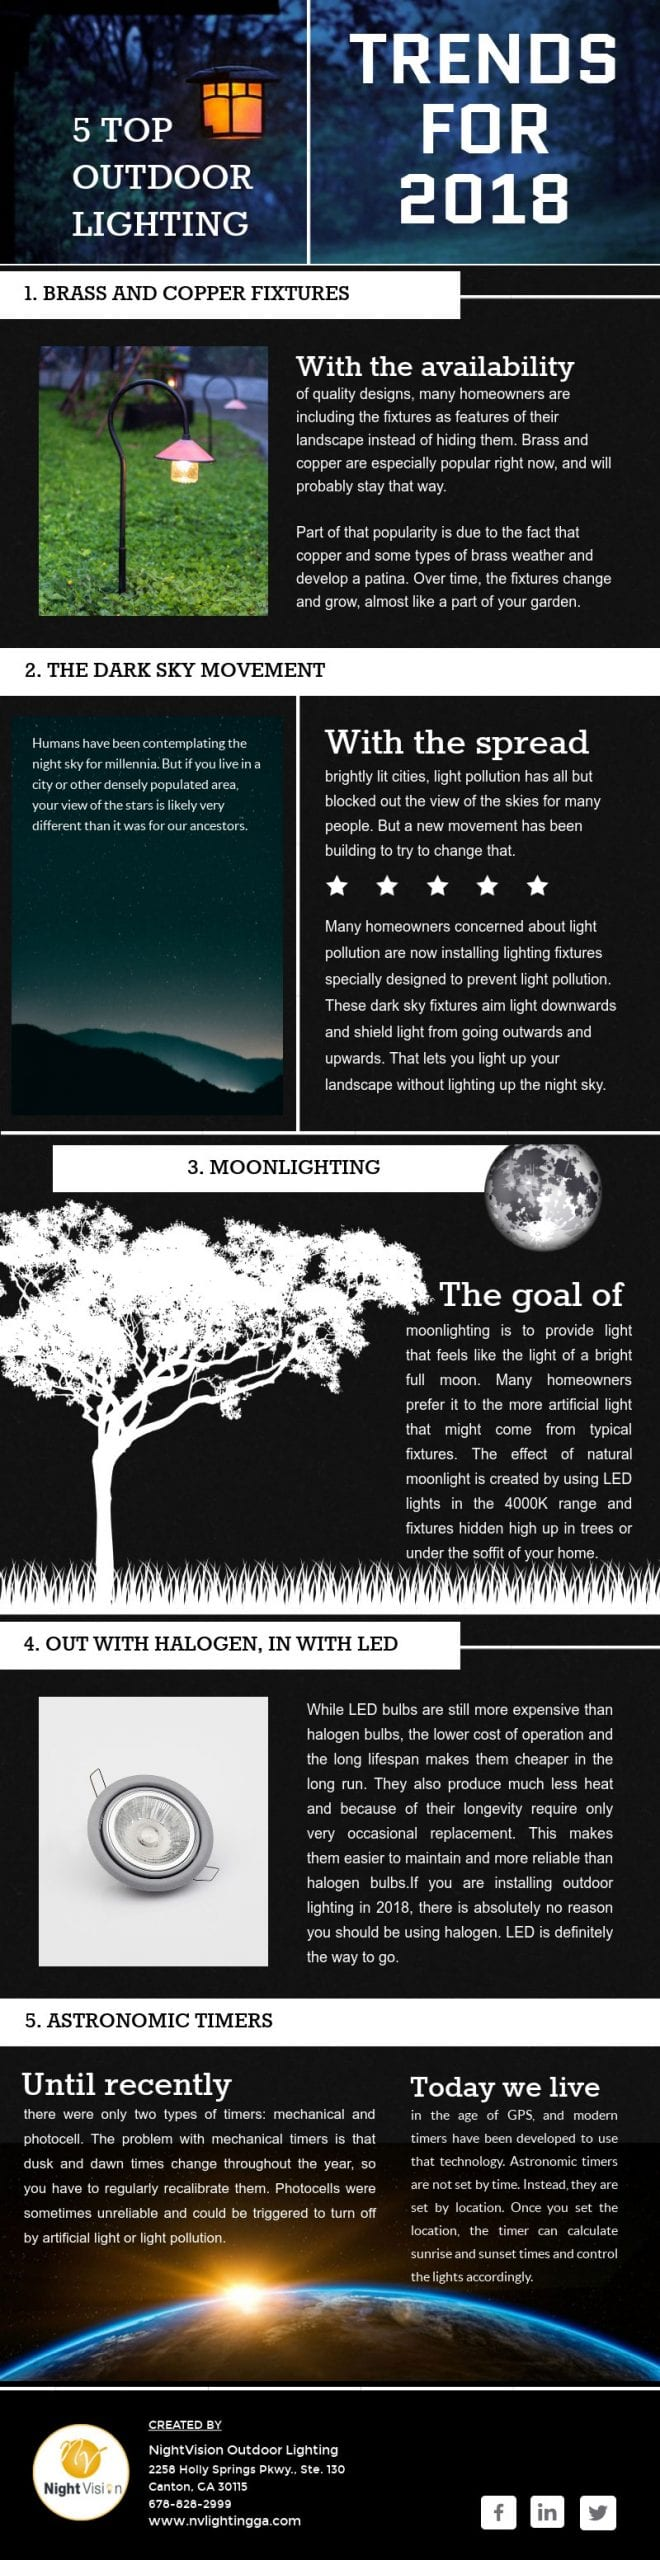 Top-Outdoor-Lighting-Trends-for-2018-[infographic]